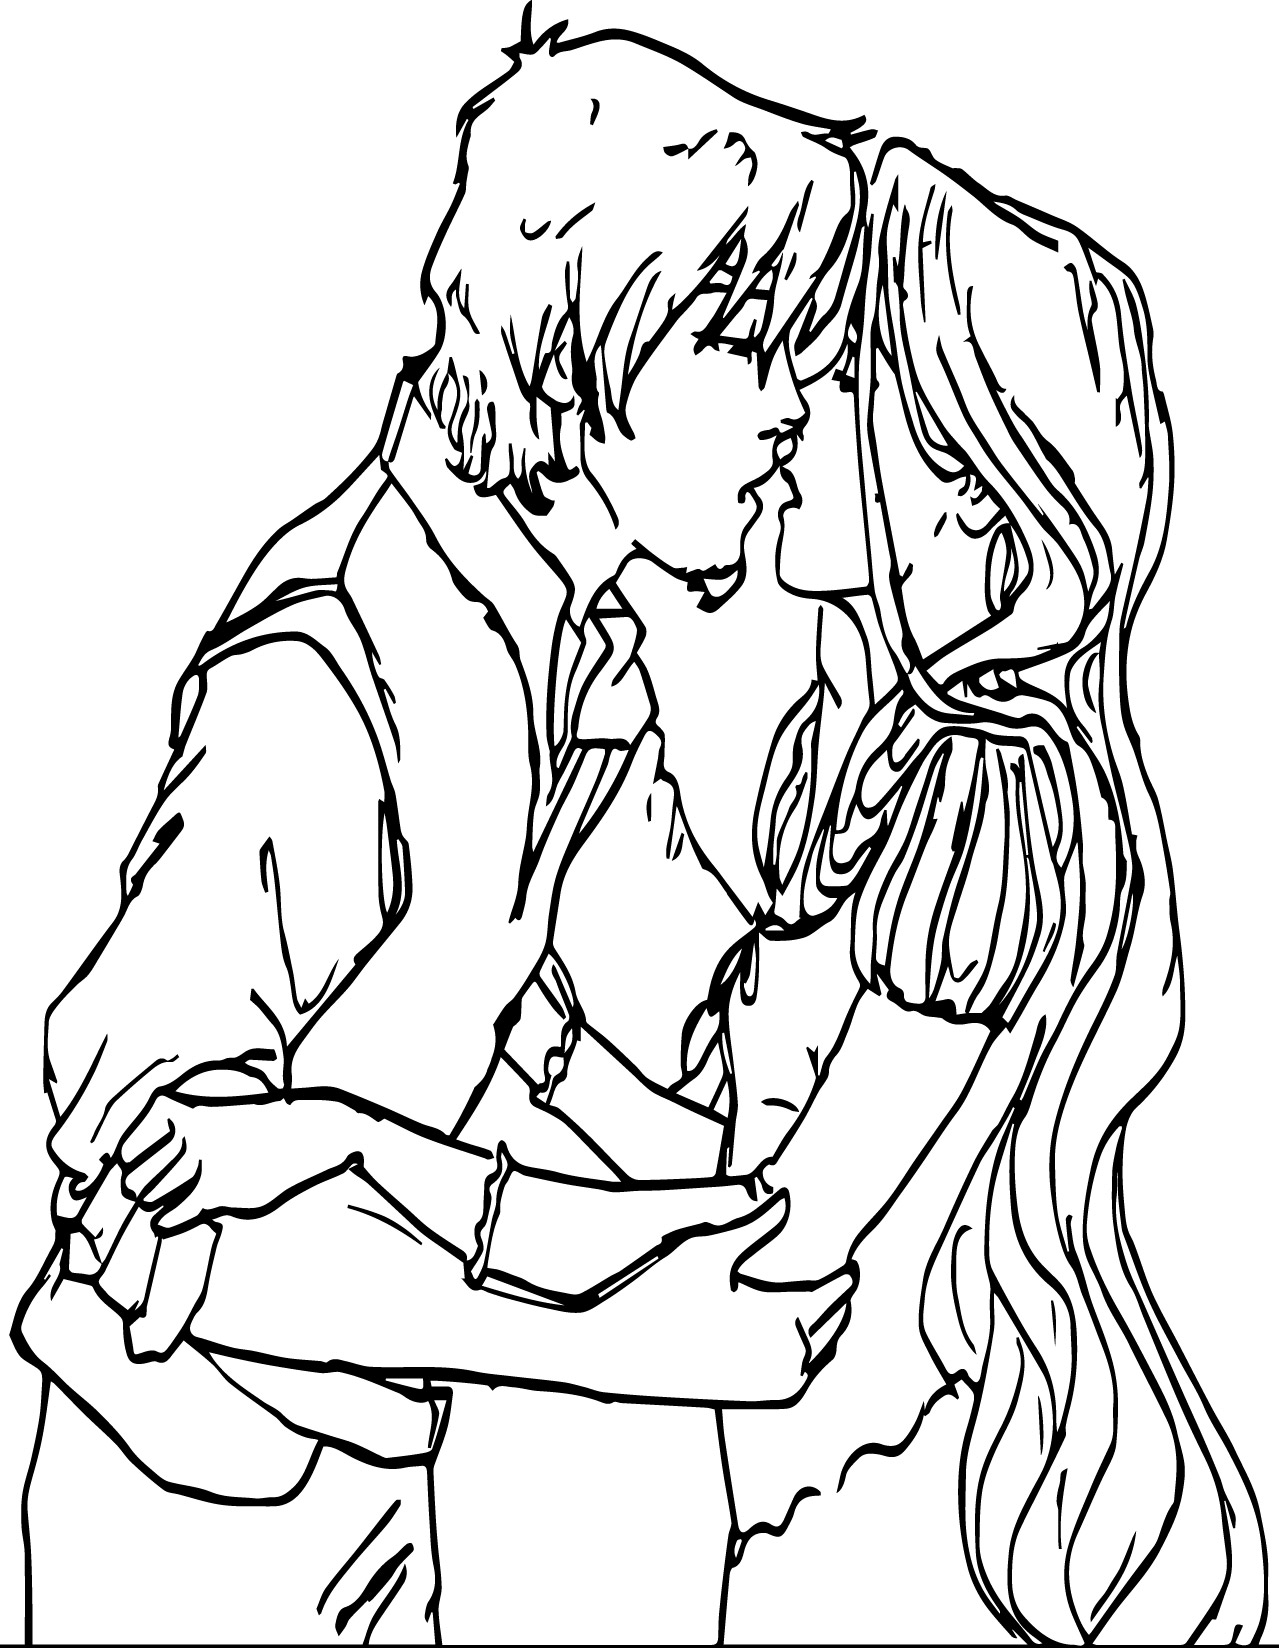 Kiss Coloring Pages Flynn And Rapunzel Kiss Coloring Page  Wecoloringpage